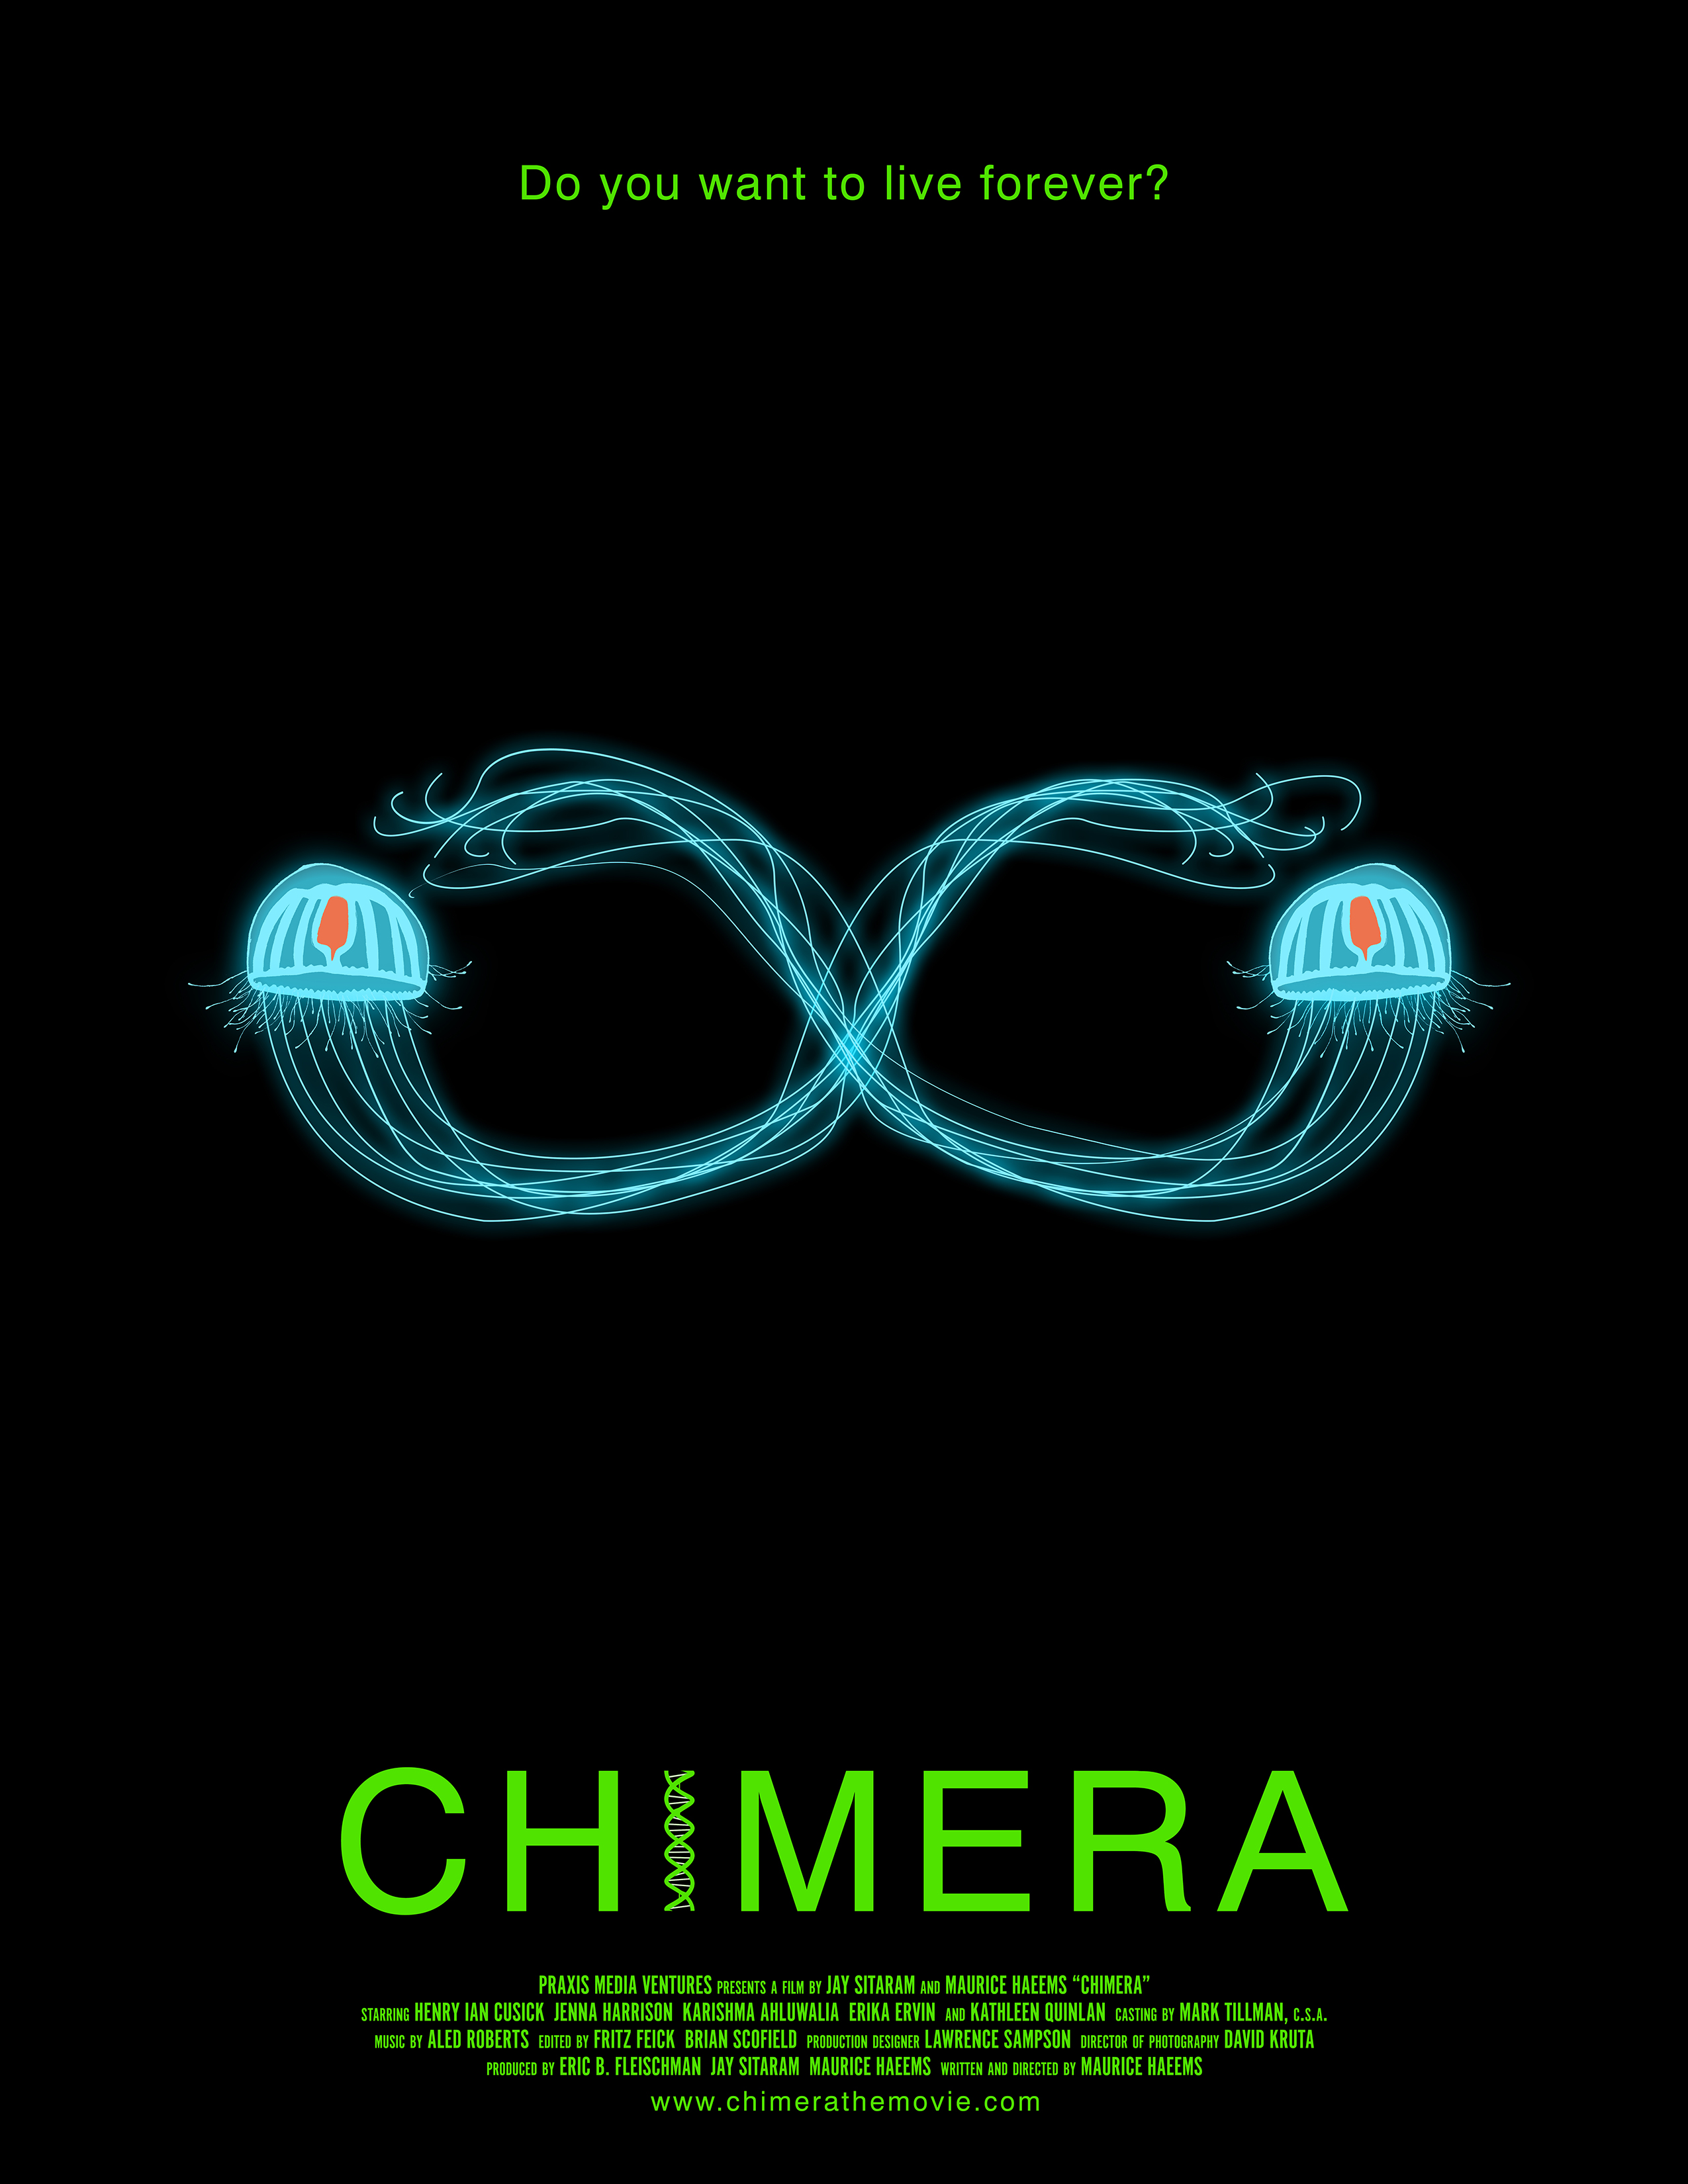 Chimera film review: A desperate scientist's race to find a cure comes with a price